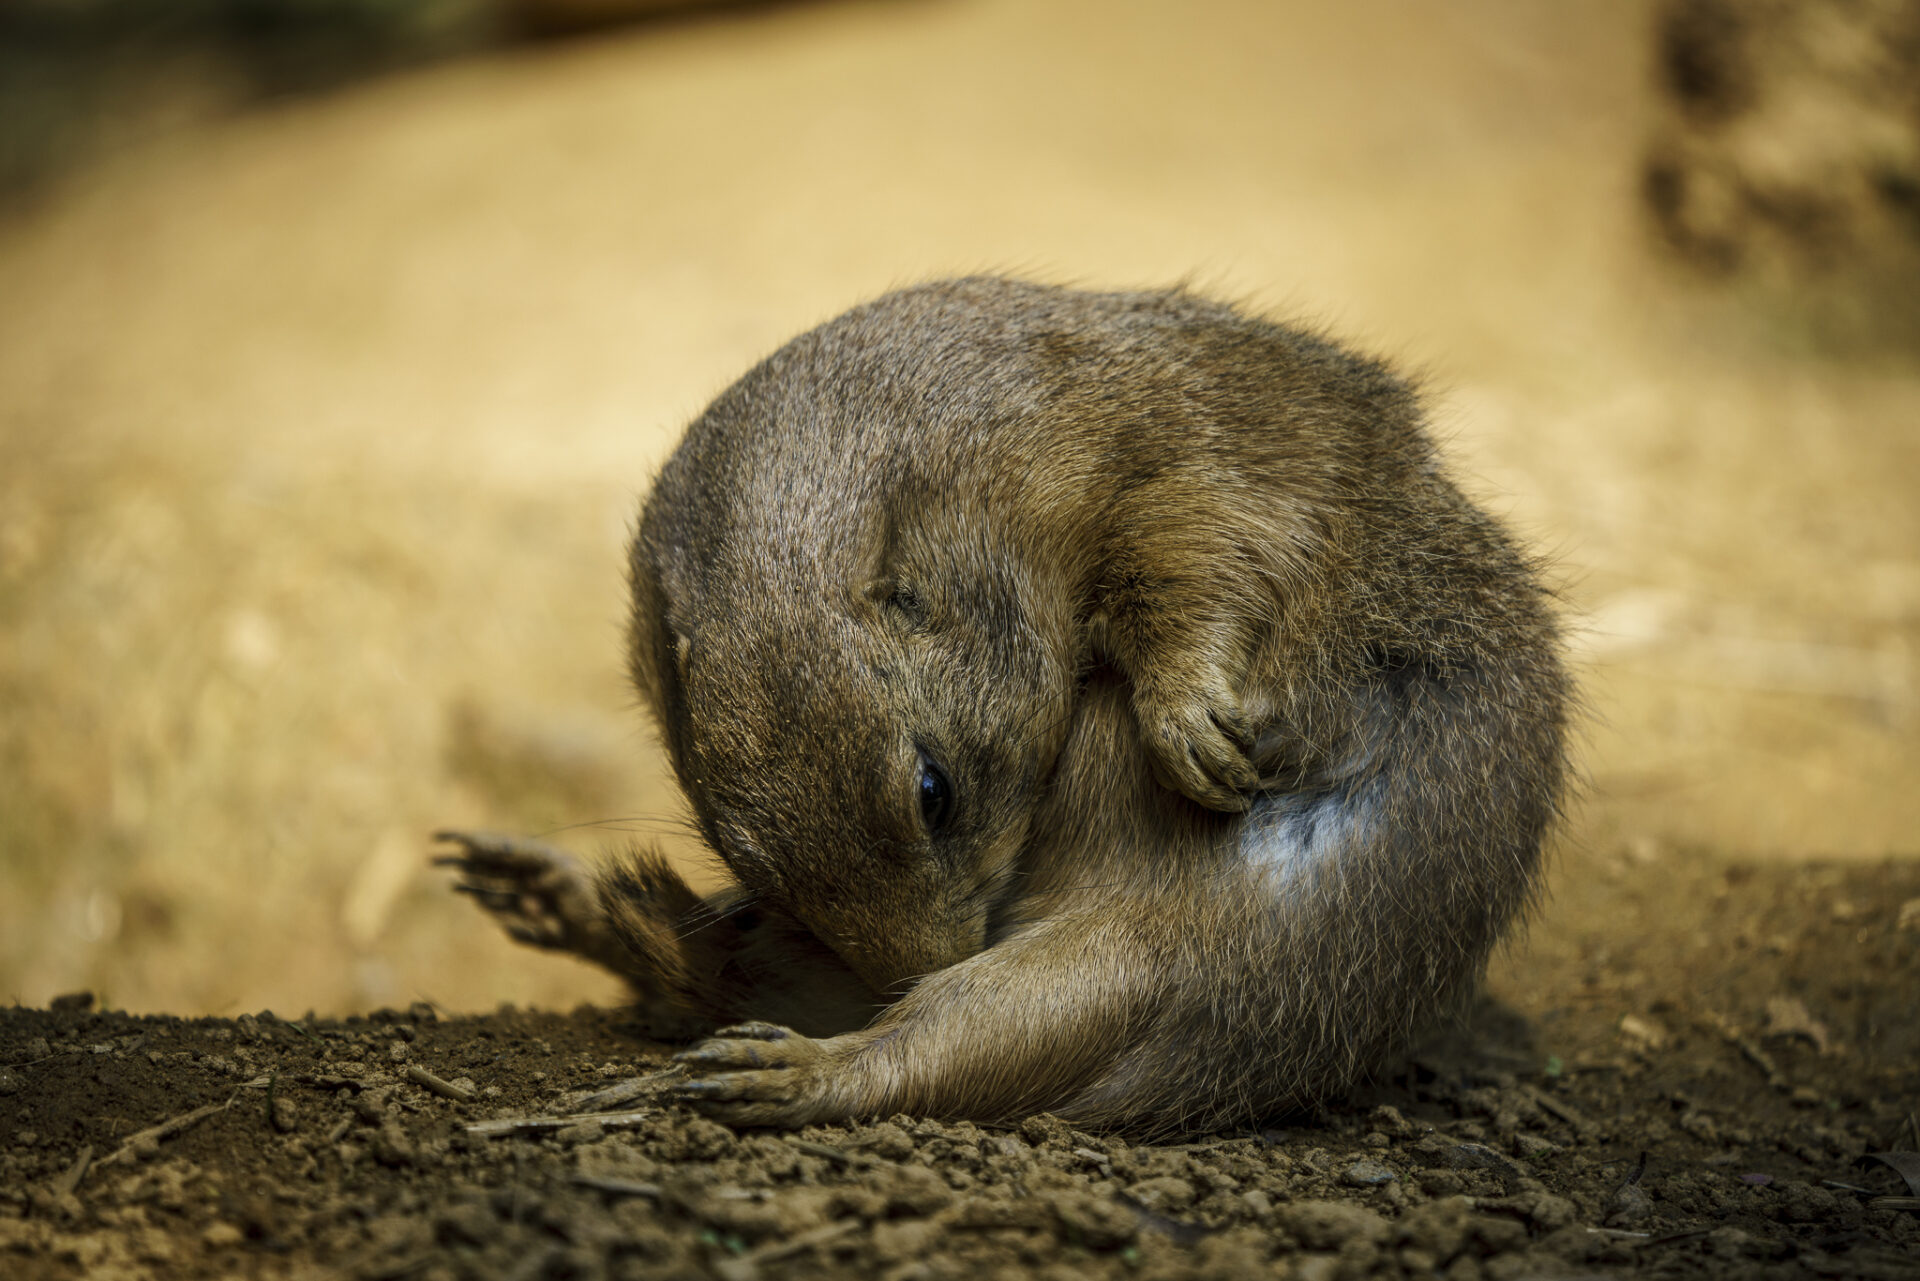 Prairie Dog Licks Itself at National Zoo